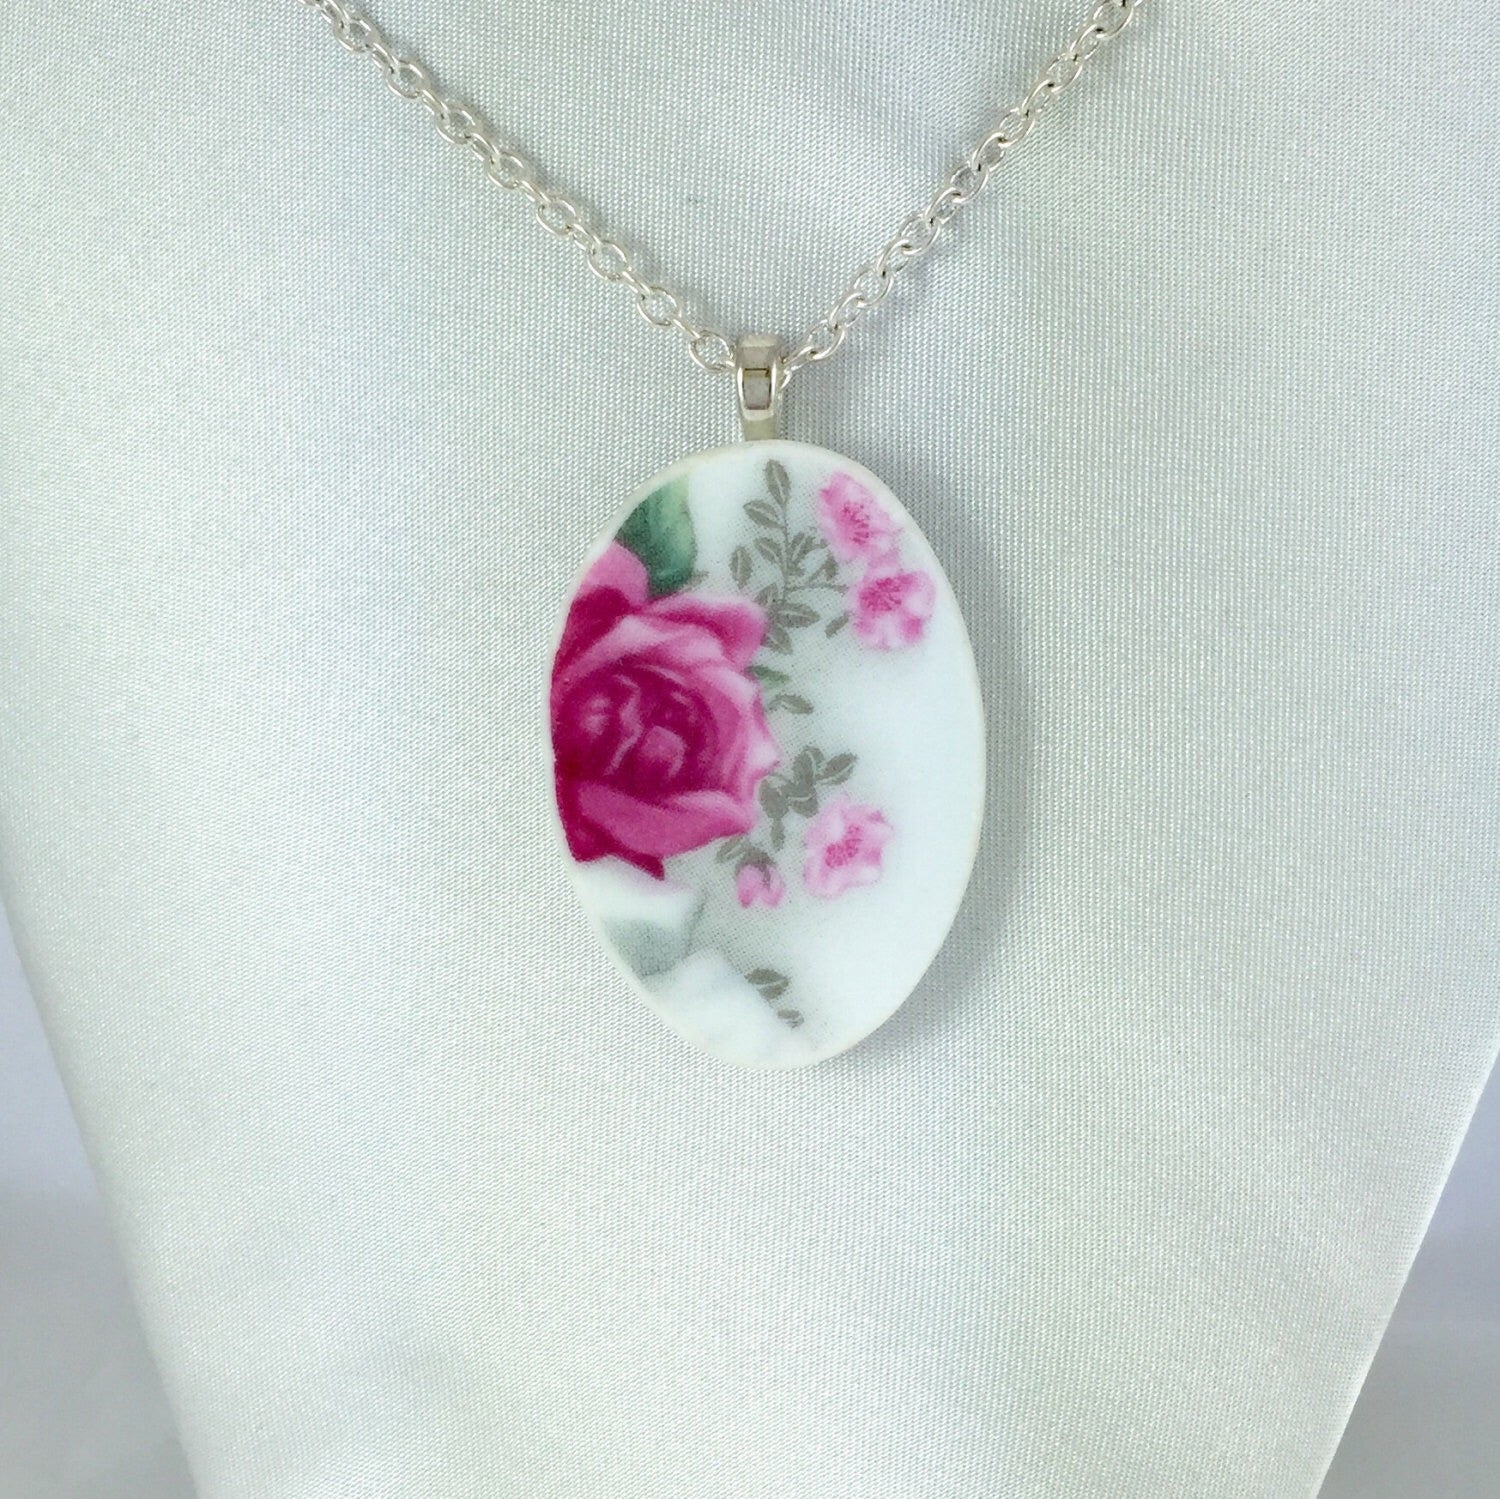 Broken China Jewelry - Classic Rose Necklace on Model